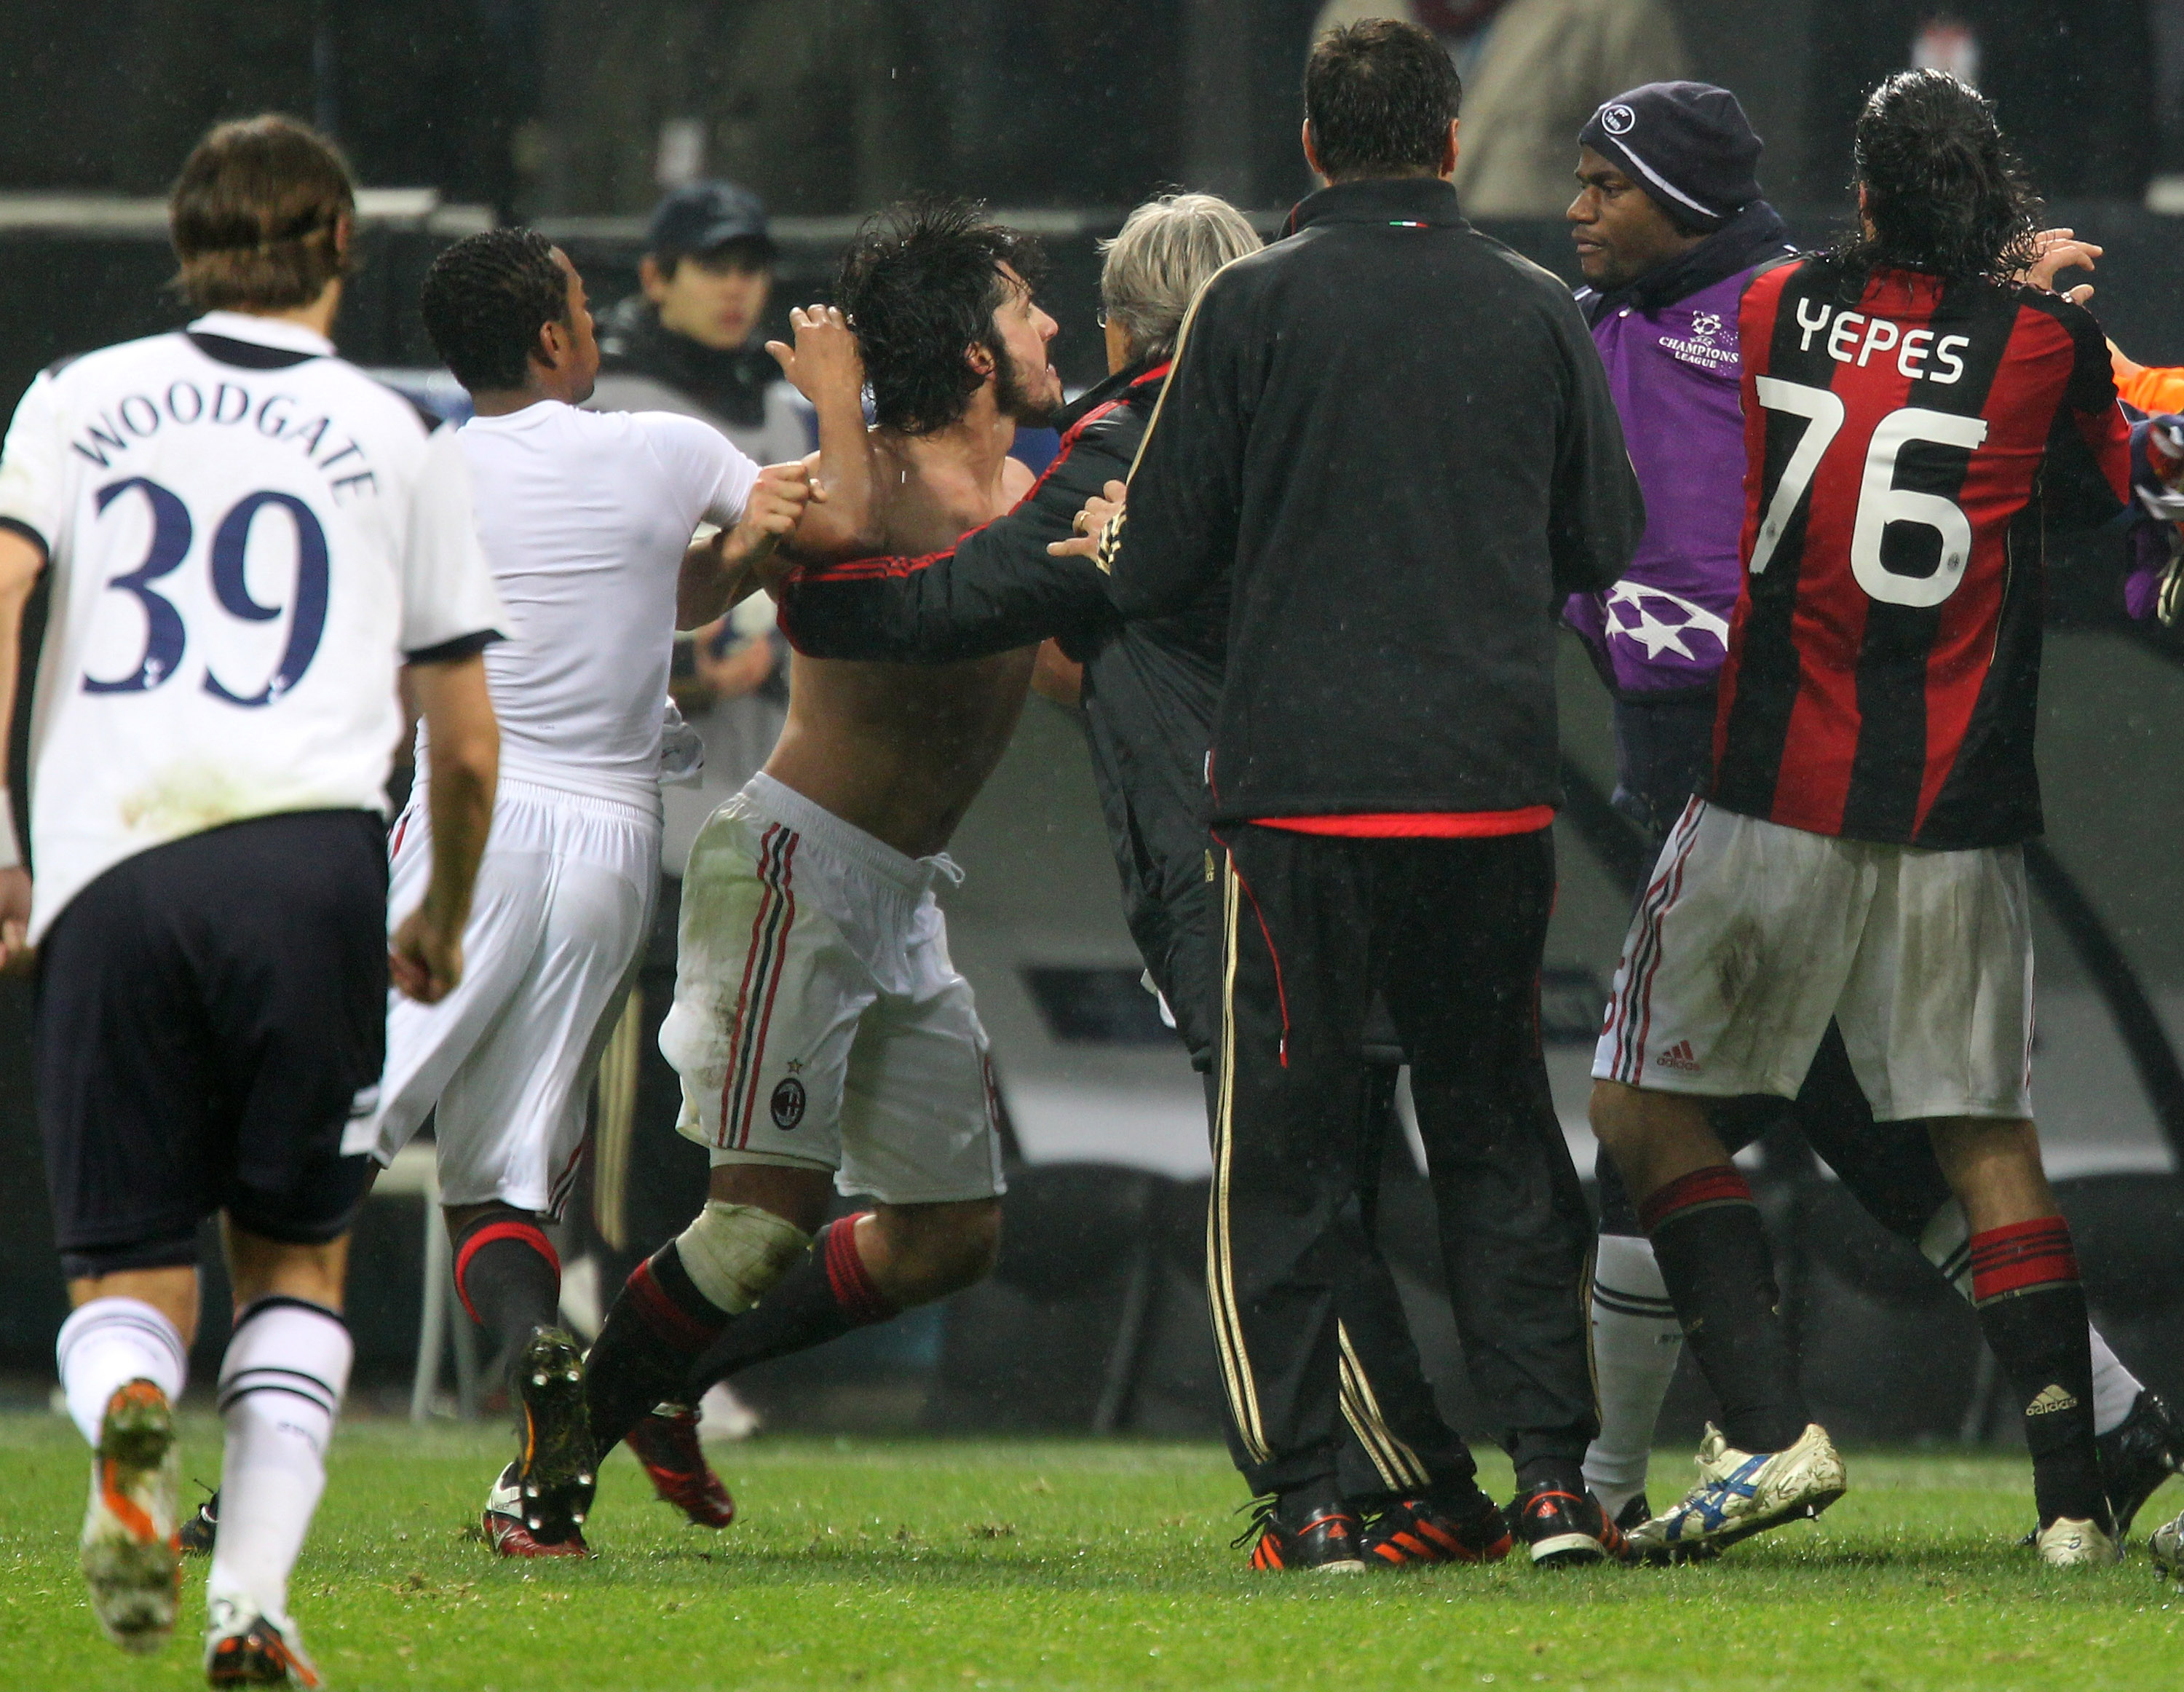 MILAN, ITALY - FEBRUARY 15:  Gennaro Gattuso of AC Milan is restrained at the end of the UEFA Champions League round of 16 first leg match between AC Milan and Tottenham Hotspur at Stadio Giuseppe Meazza on February 15, 2011 in Milan, Italy.  (Photo by Al